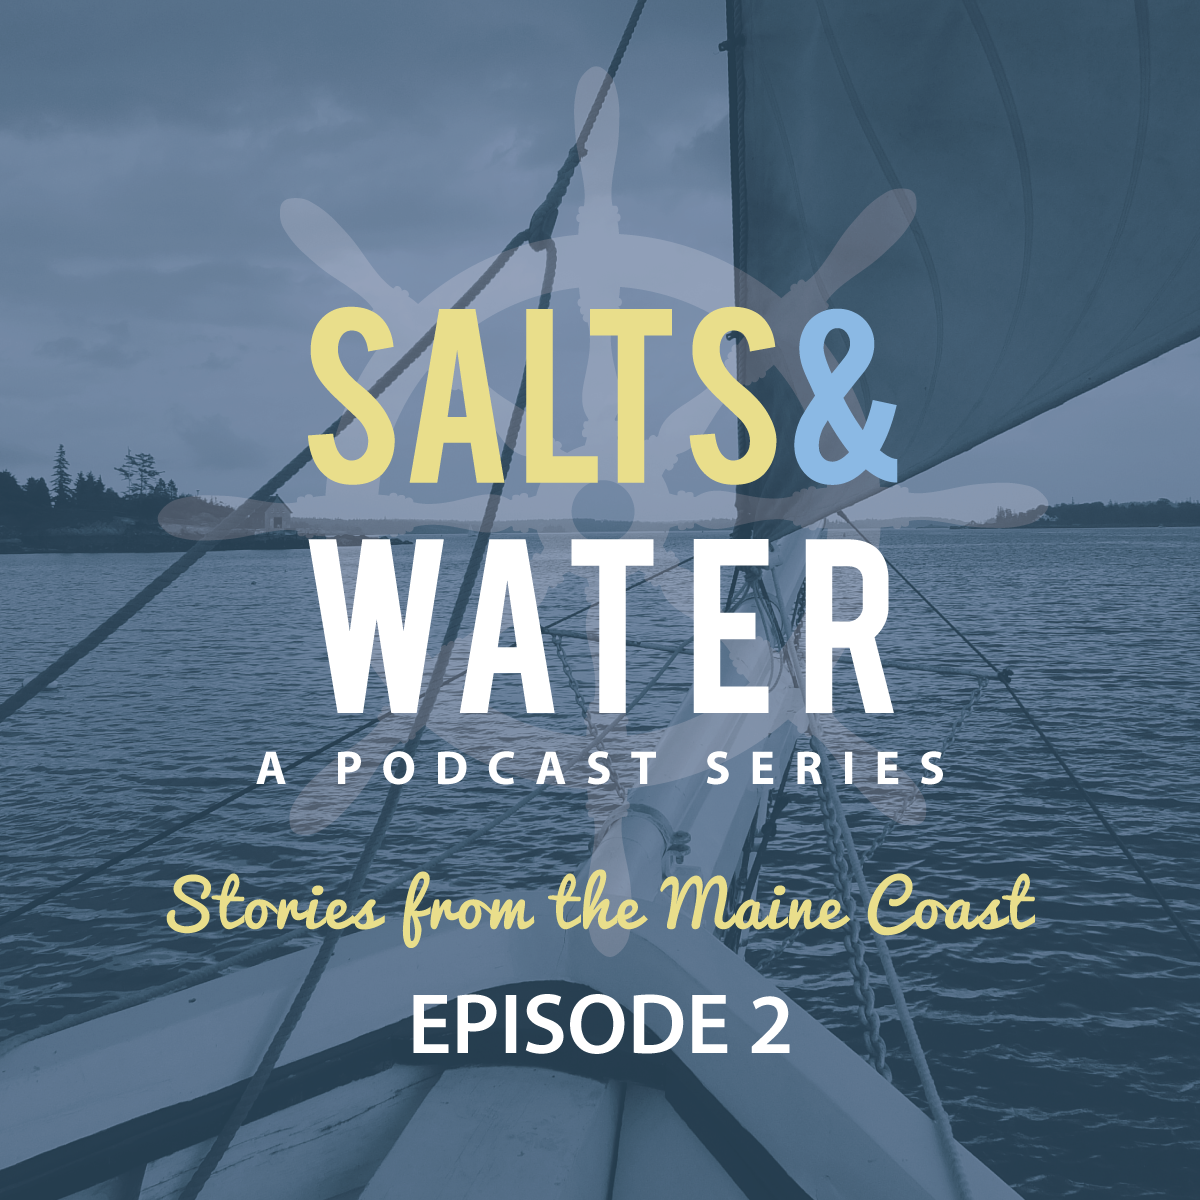 SALTS-AND-WATER-EPISODE-2